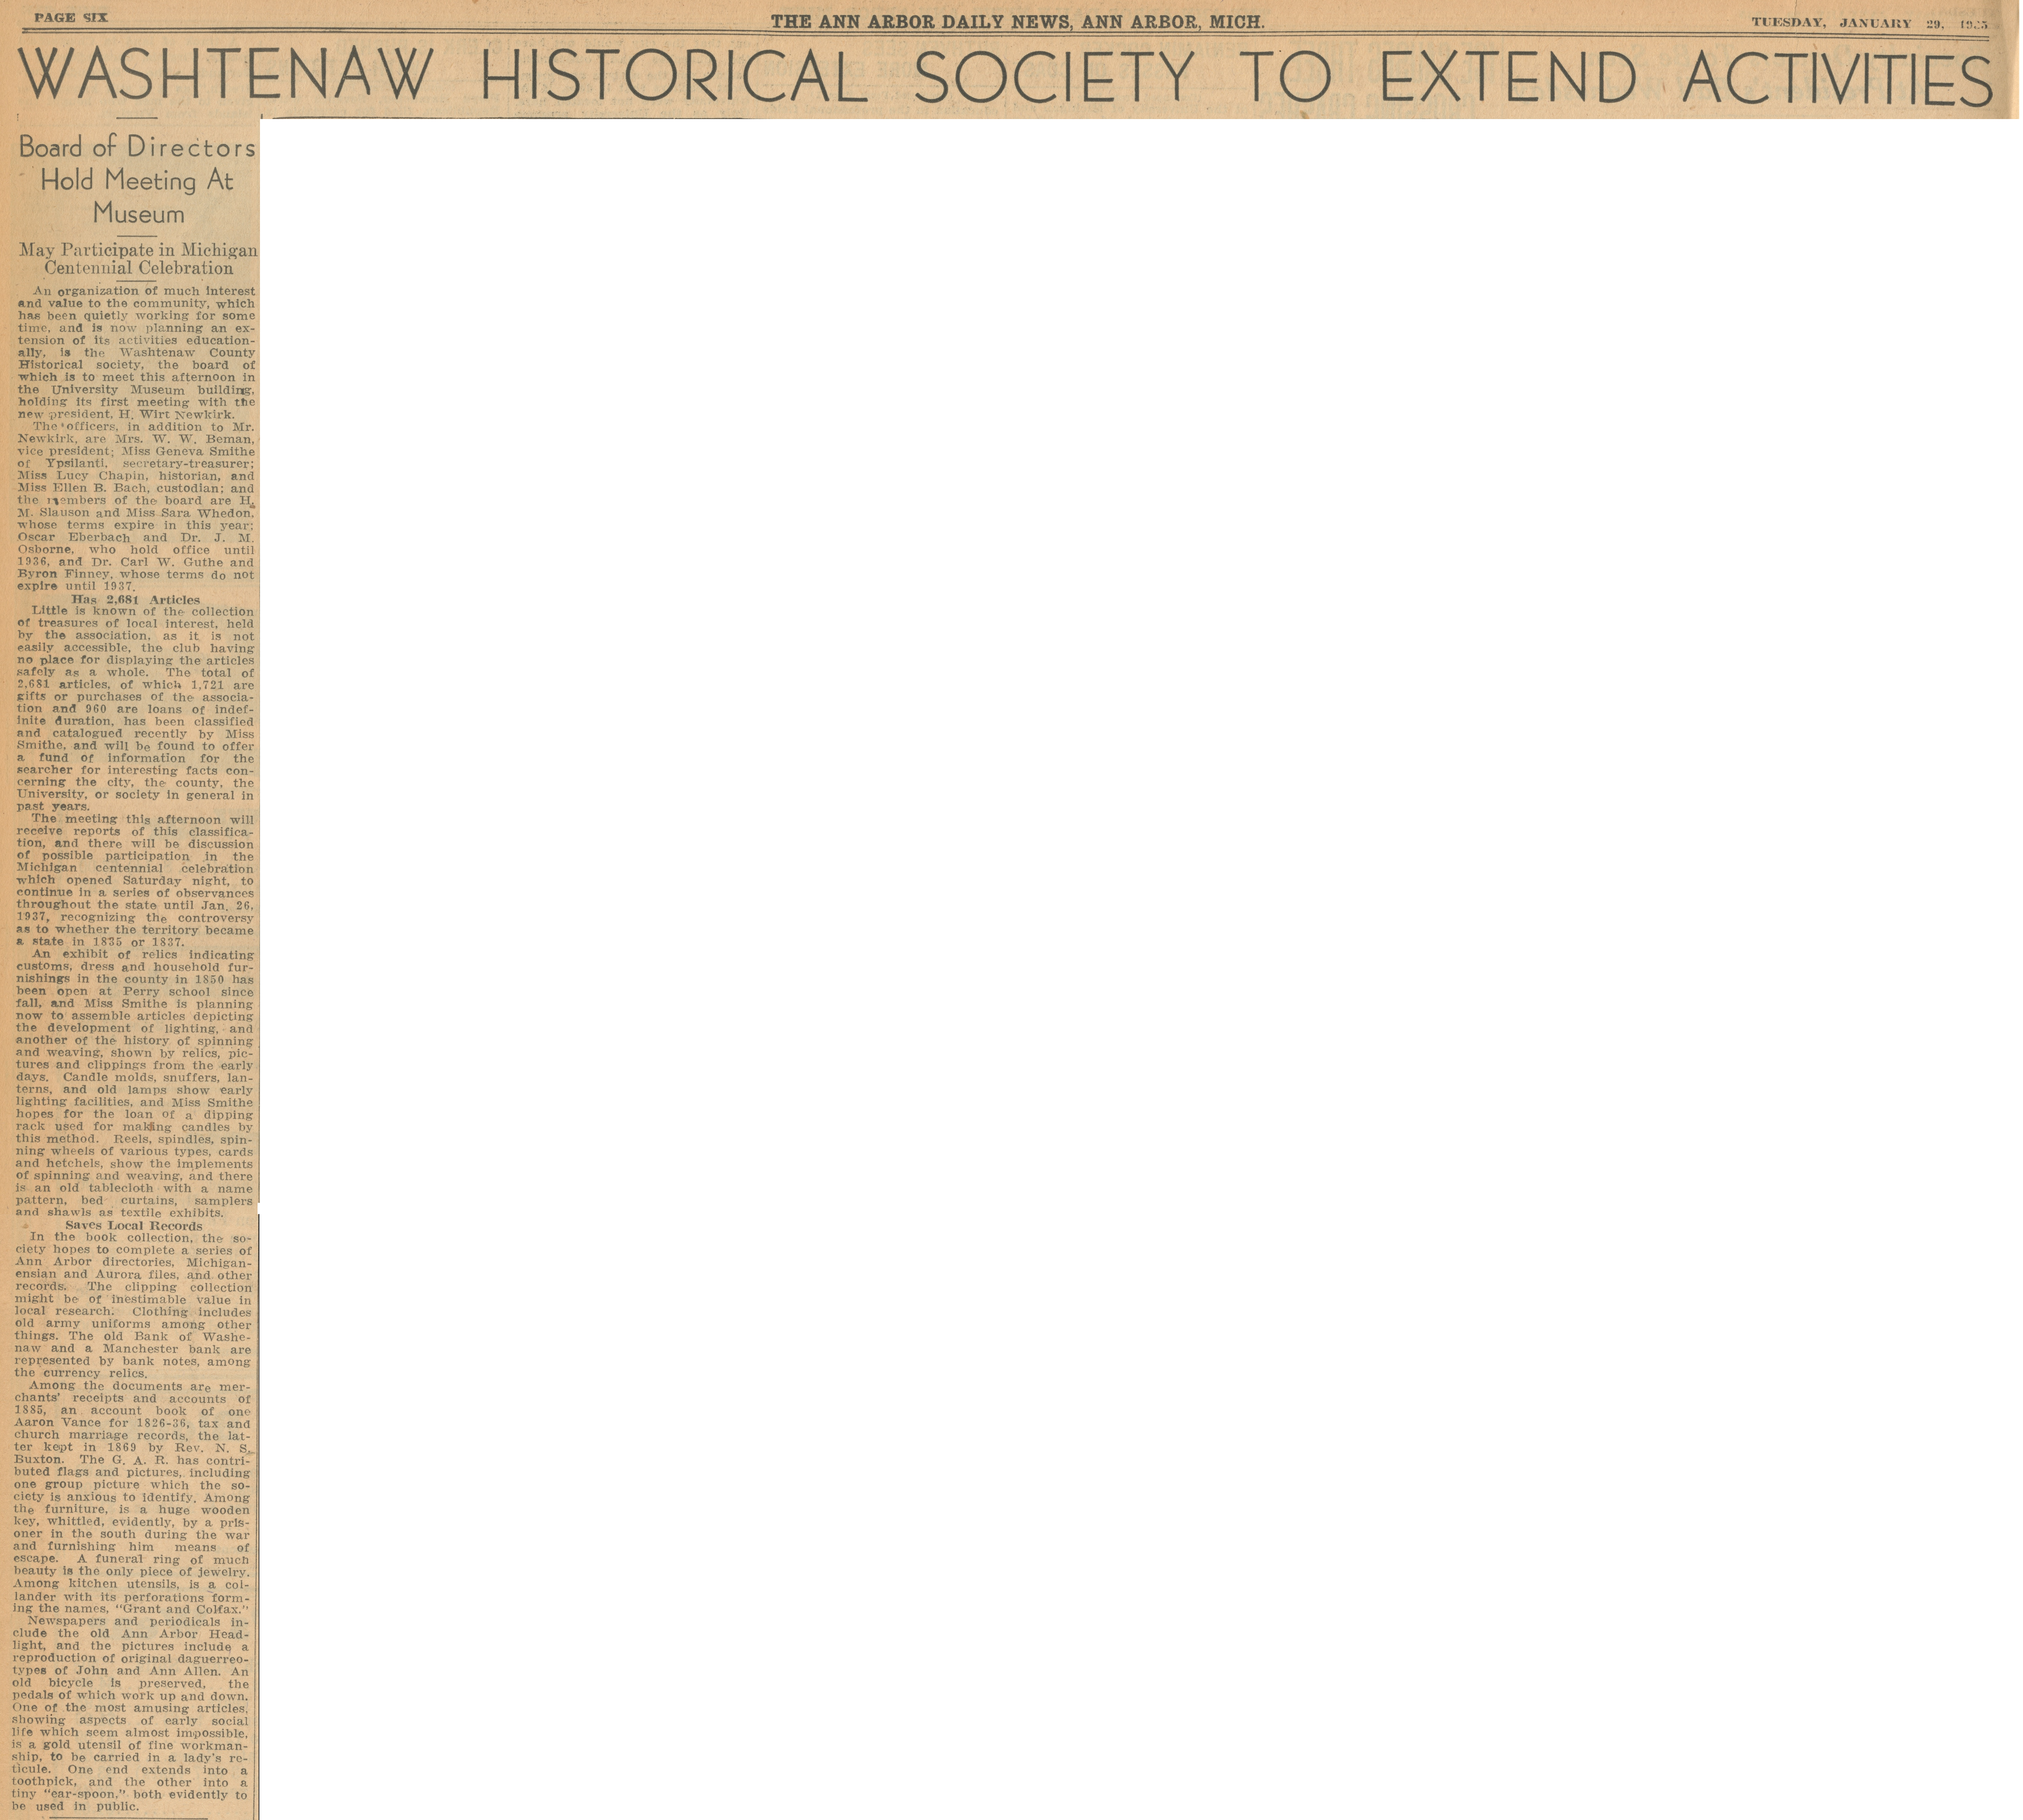 Washtenaw Historical Society To Extend Activities - Board of Directors Hold Meeting At Museum image